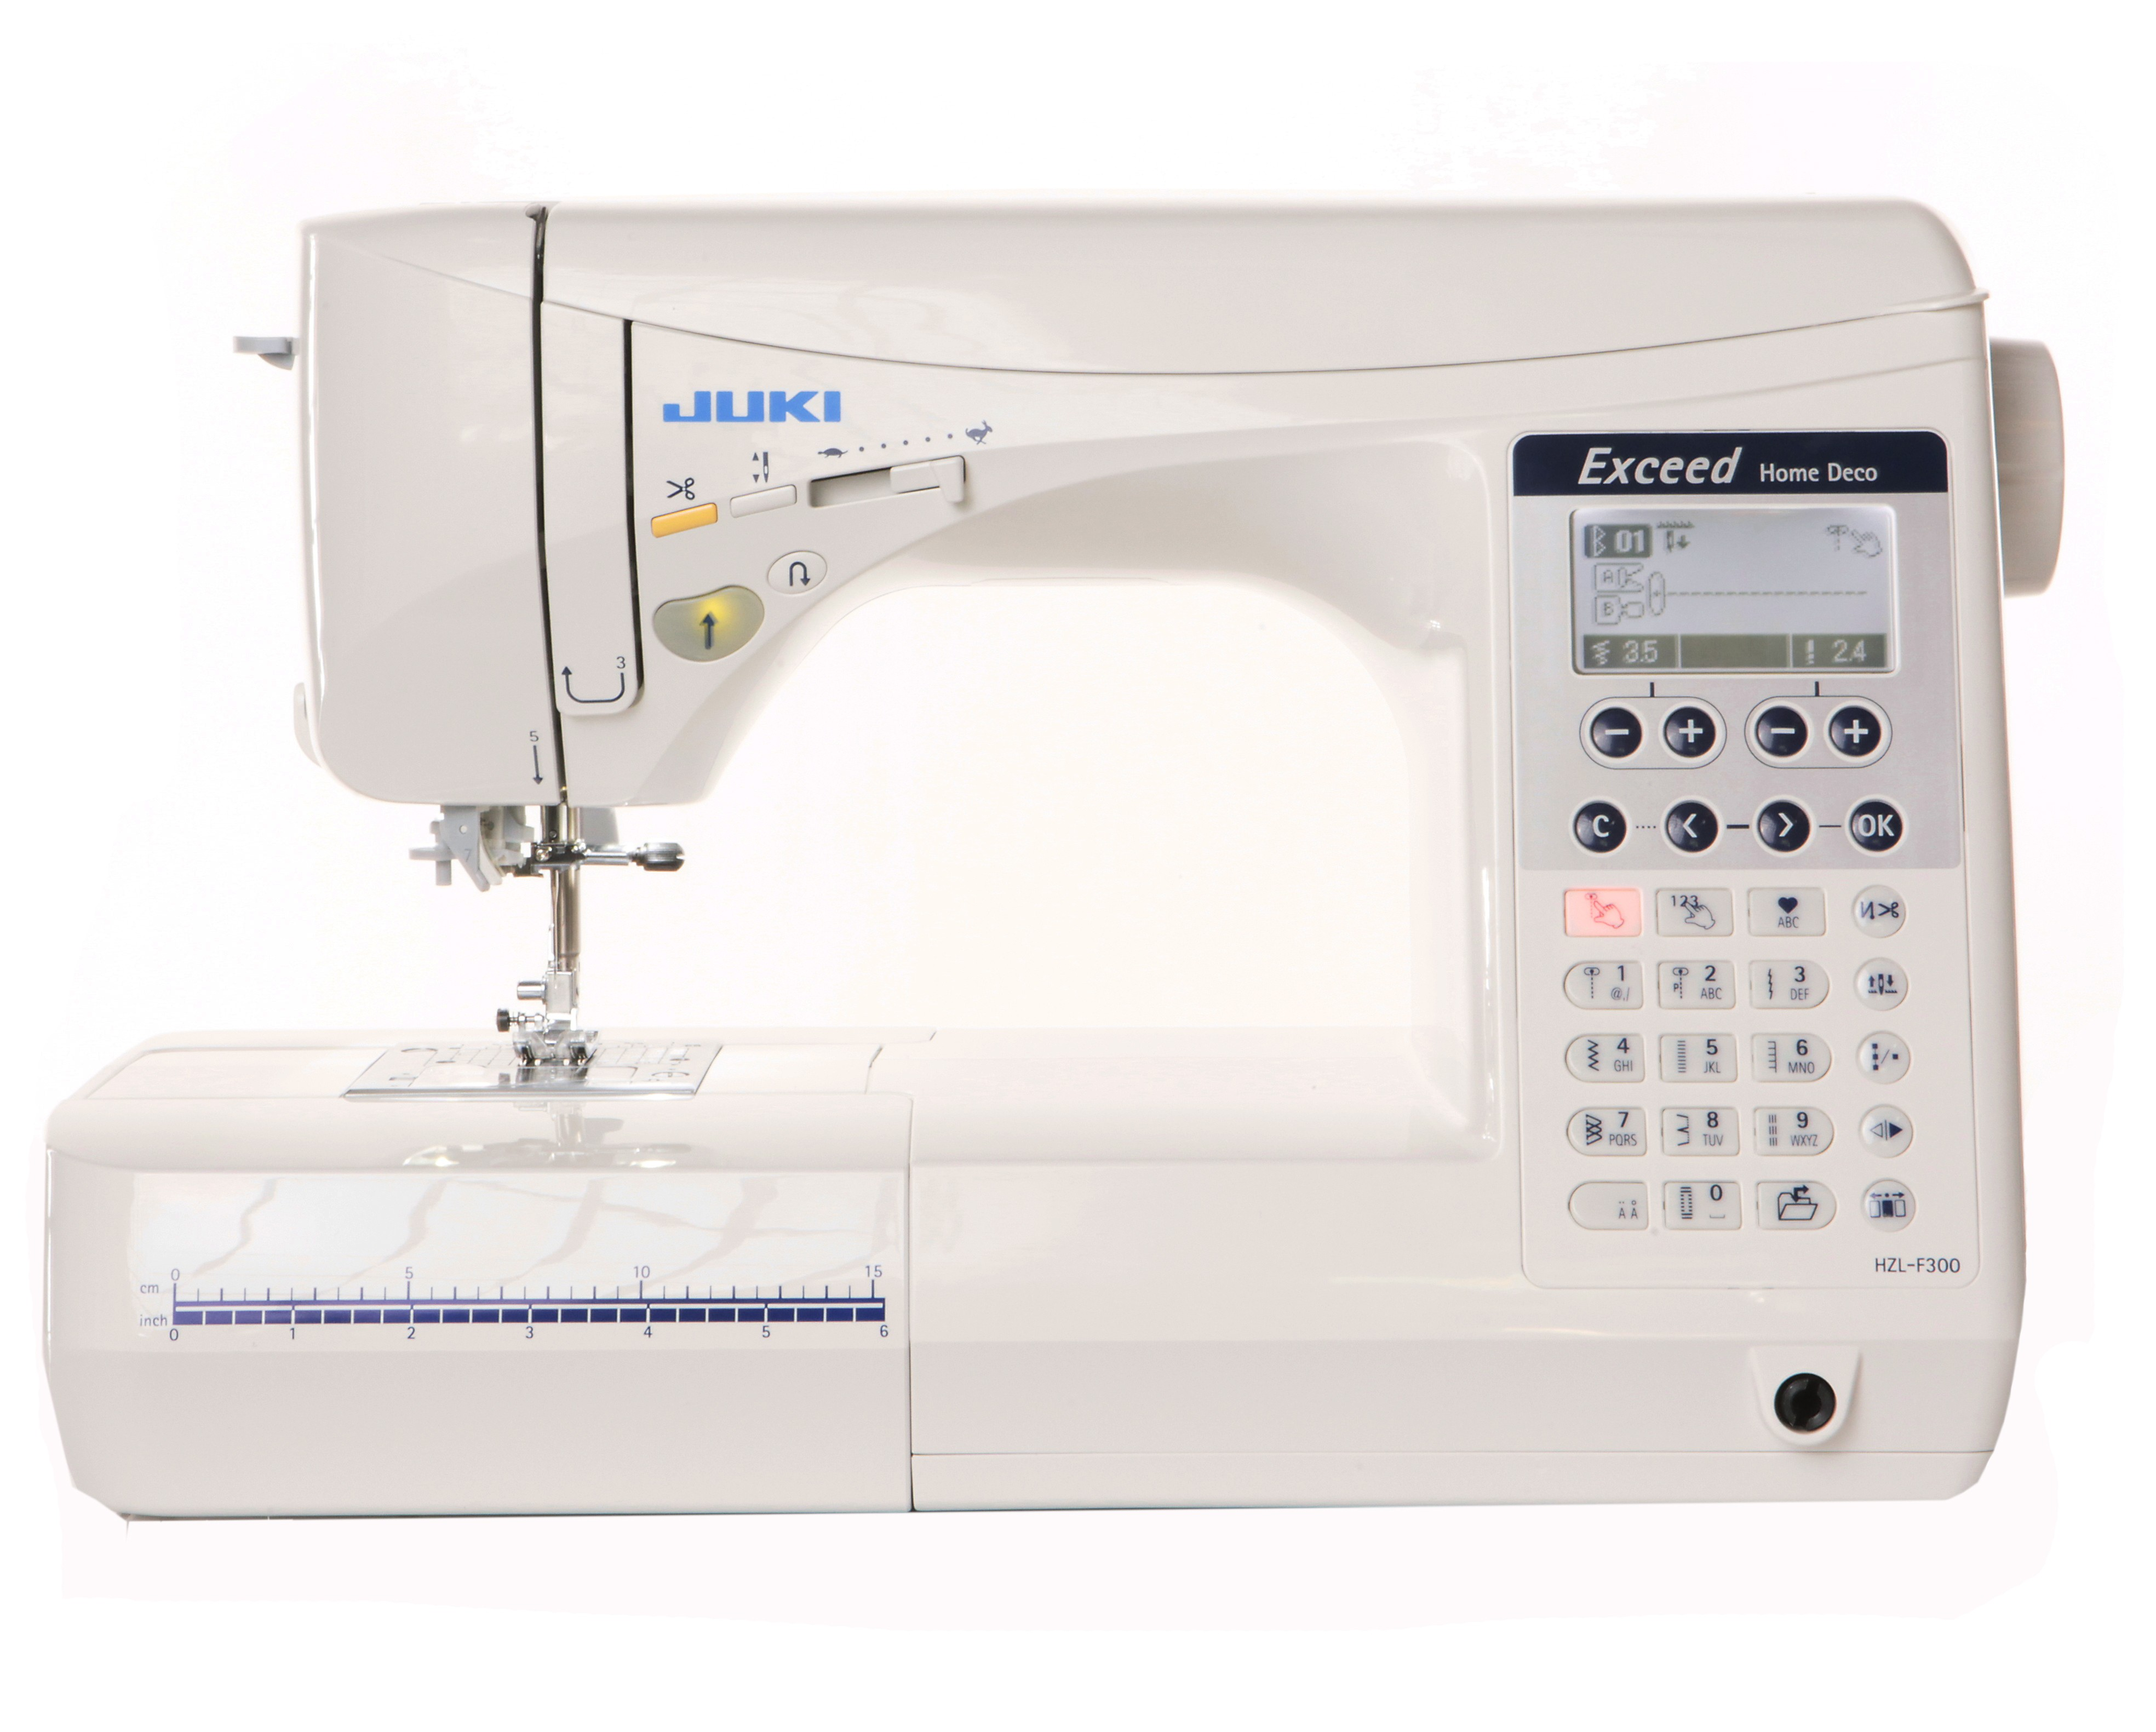 HZL-F300 - Sewing - Products